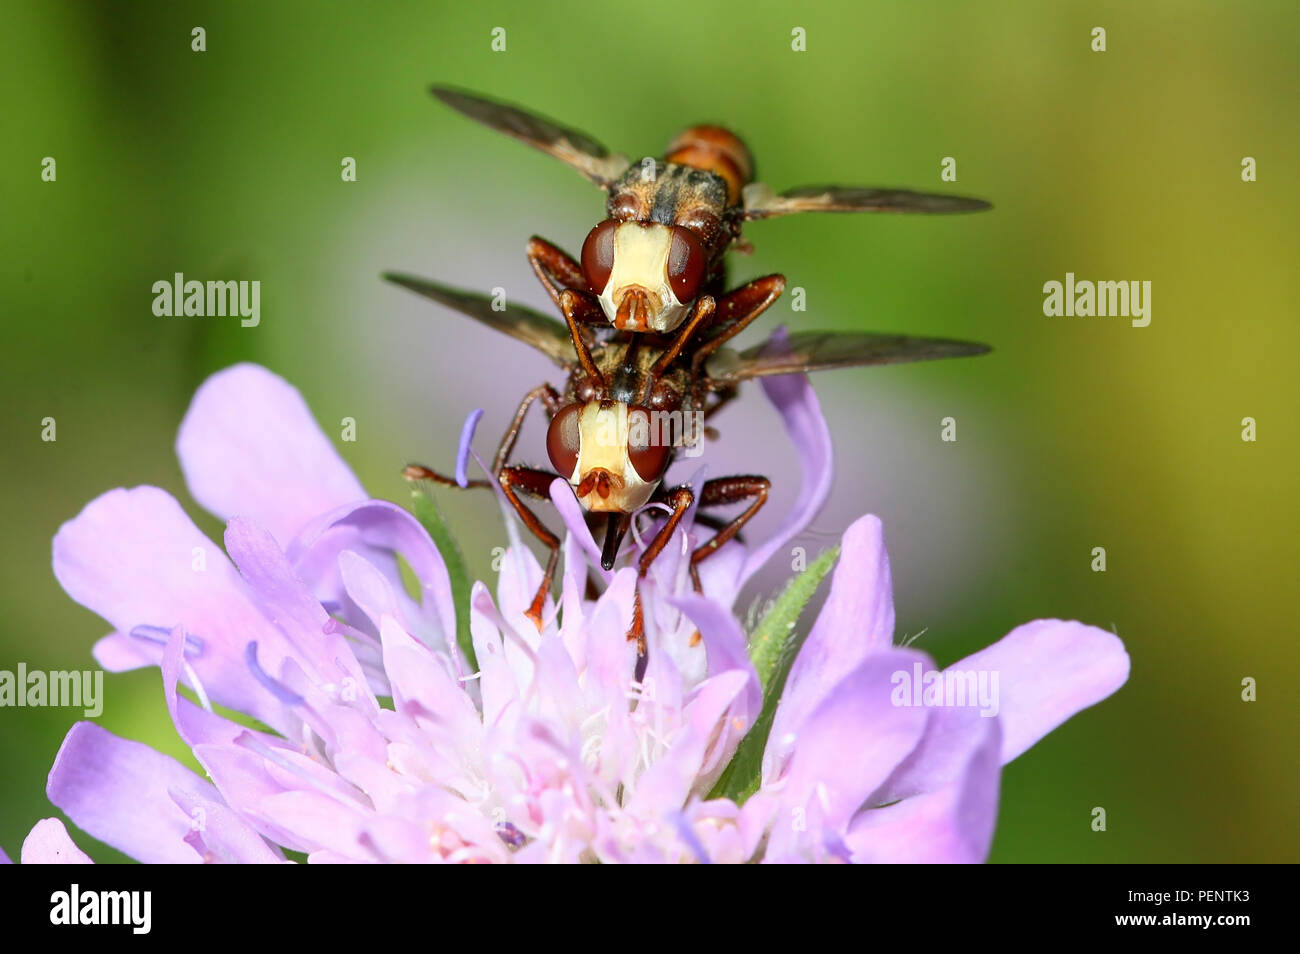 Mating European Common thick-headed Fly (Sicus ferrugineus - Conopidae)  on a pink mist flower Stock Photo